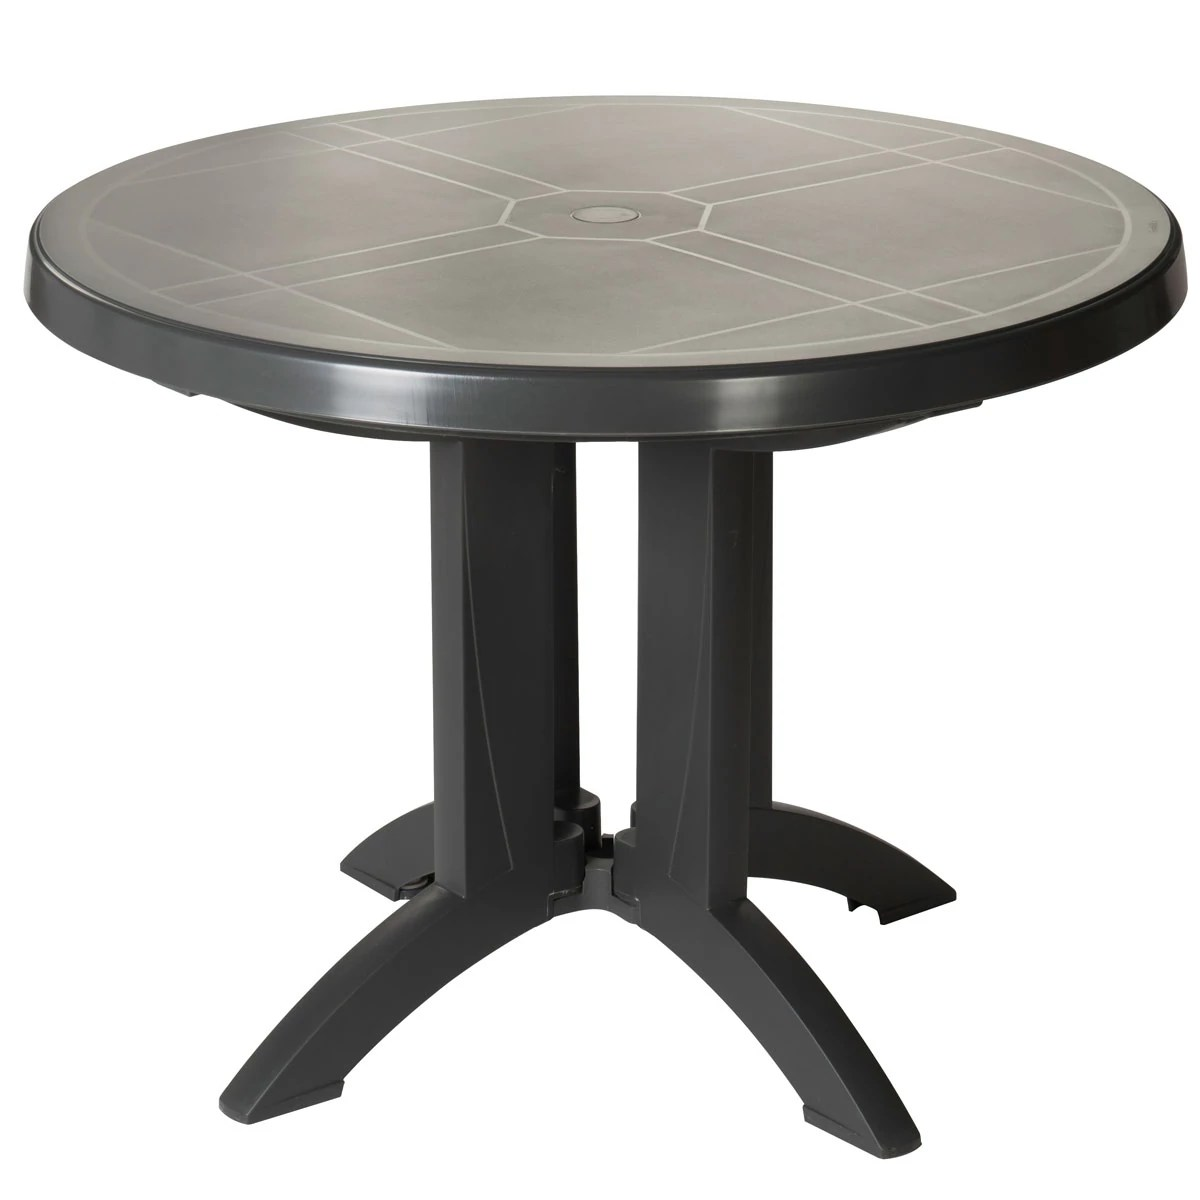 Table De Jardin Ronde Table Ronde De Jardin Vega Grosfillex